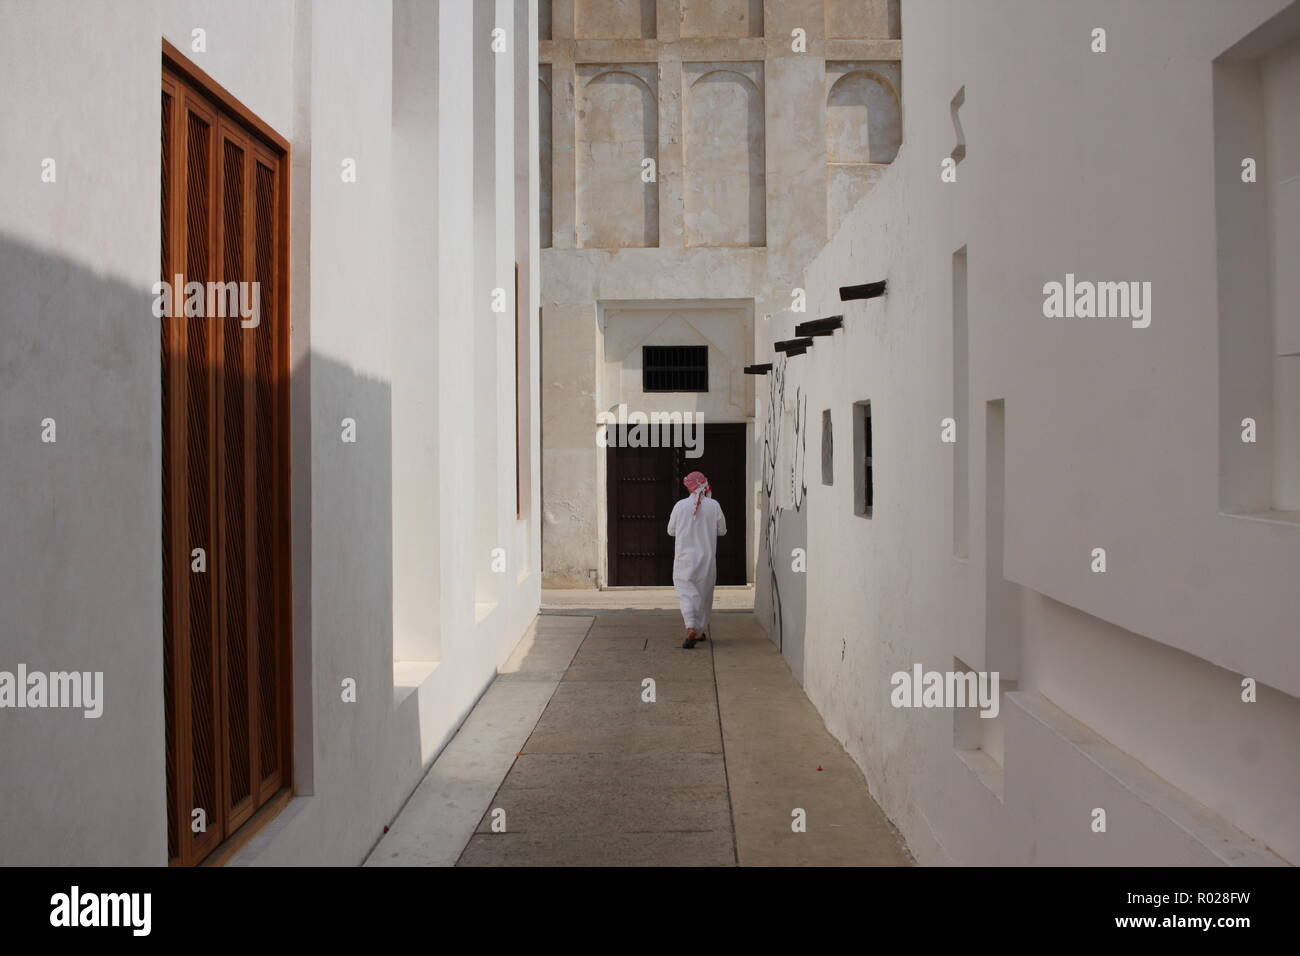 A Bahraini man wearing dishdash, guthra, and aghal walking along a narrow alley on the Pearl Trail, old Muharraq, Kingdom of Bahrain - Stock Image